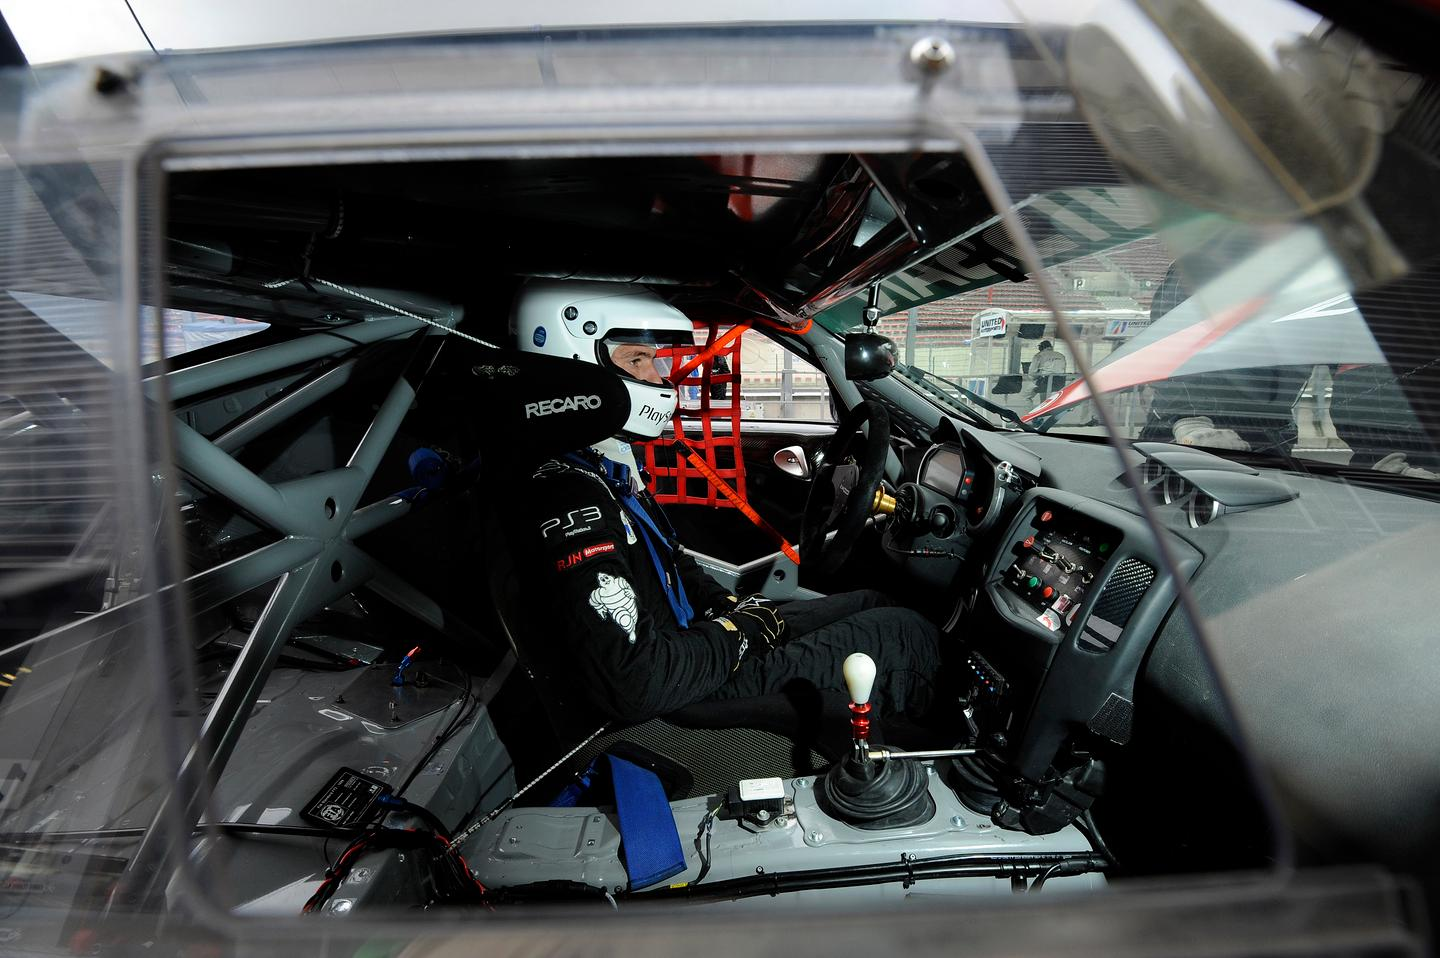 Jordan Tresson has successfully translated virtual skills to the real world racetrack